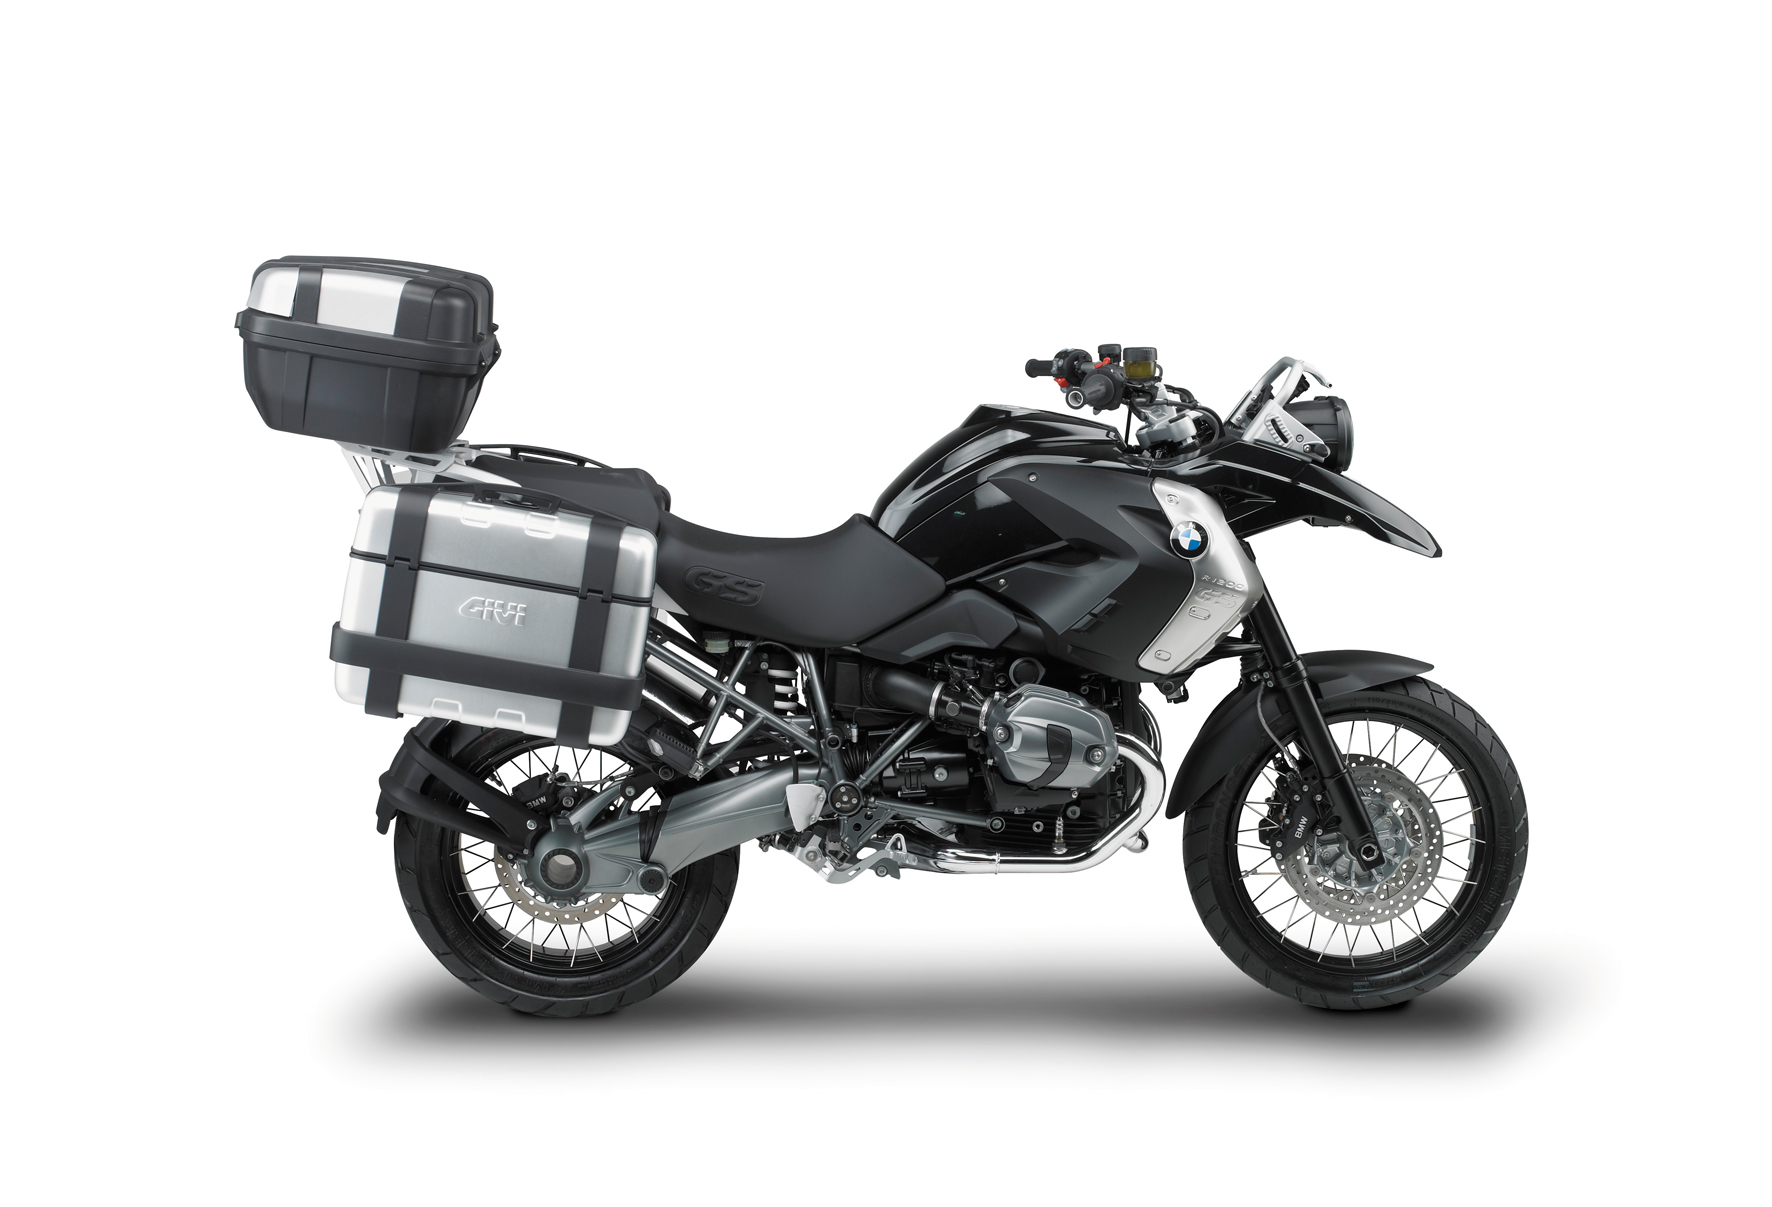 givi trk trekker valises ou top cases cache aluminium 46 litre rad eu. Black Bedroom Furniture Sets. Home Design Ideas